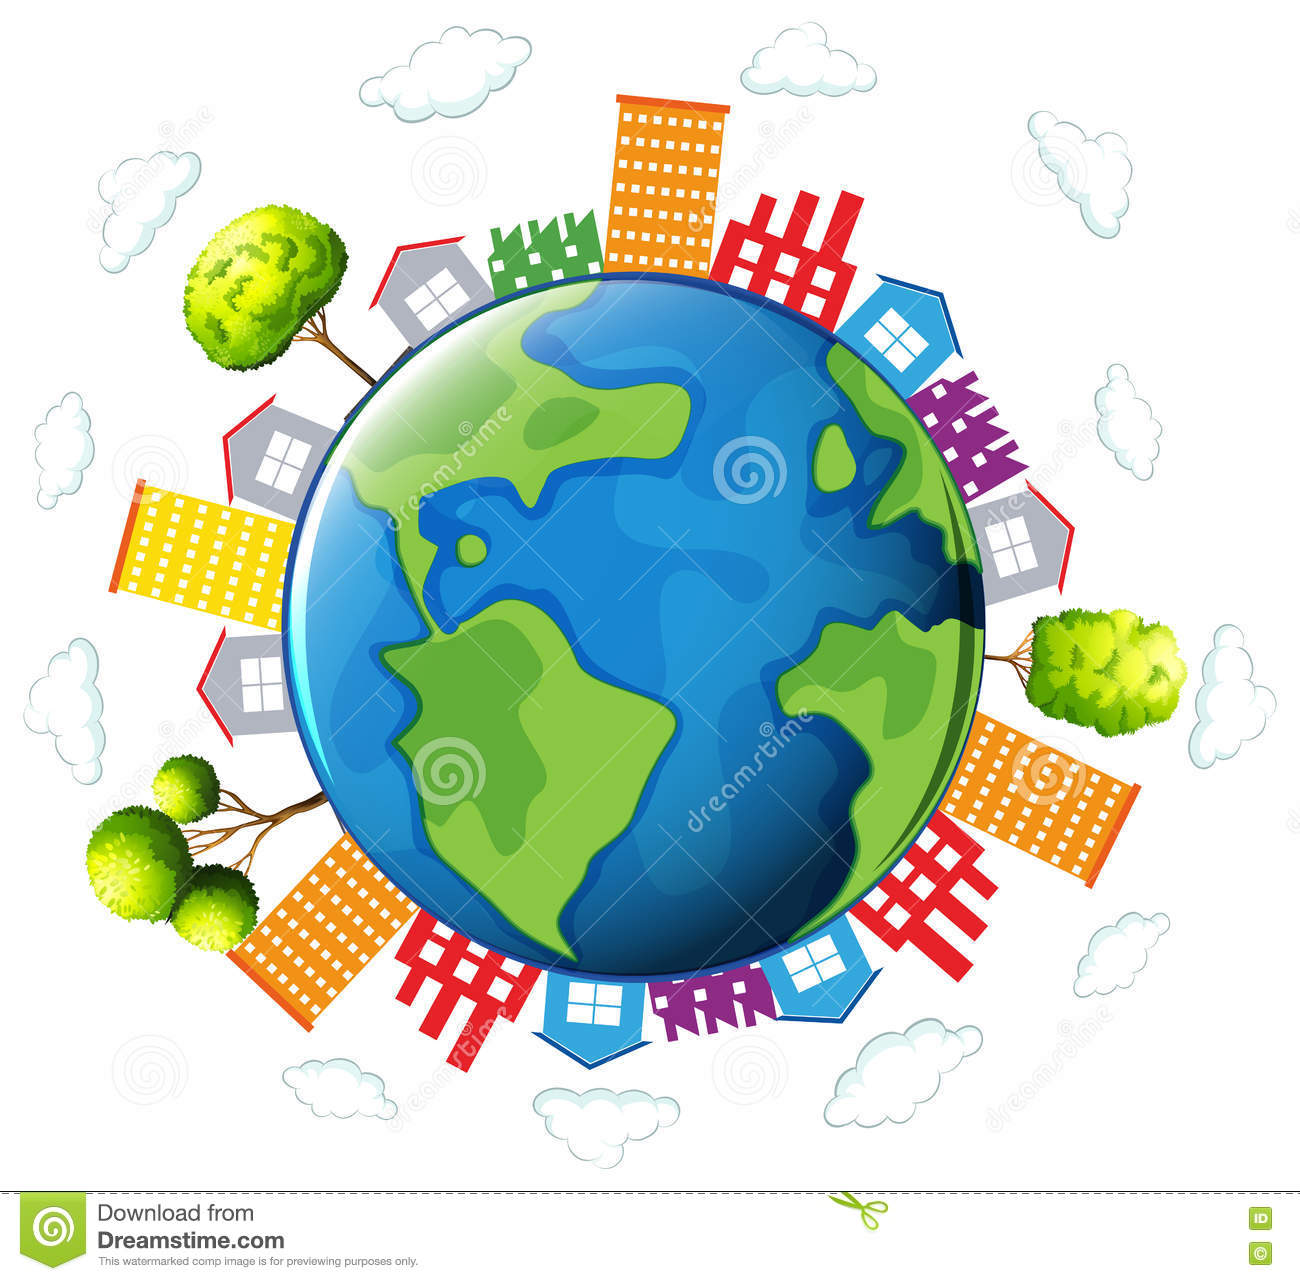 homes around the world clipart. royaltyfree vector download houses and buildings around the earth homes world clipart o